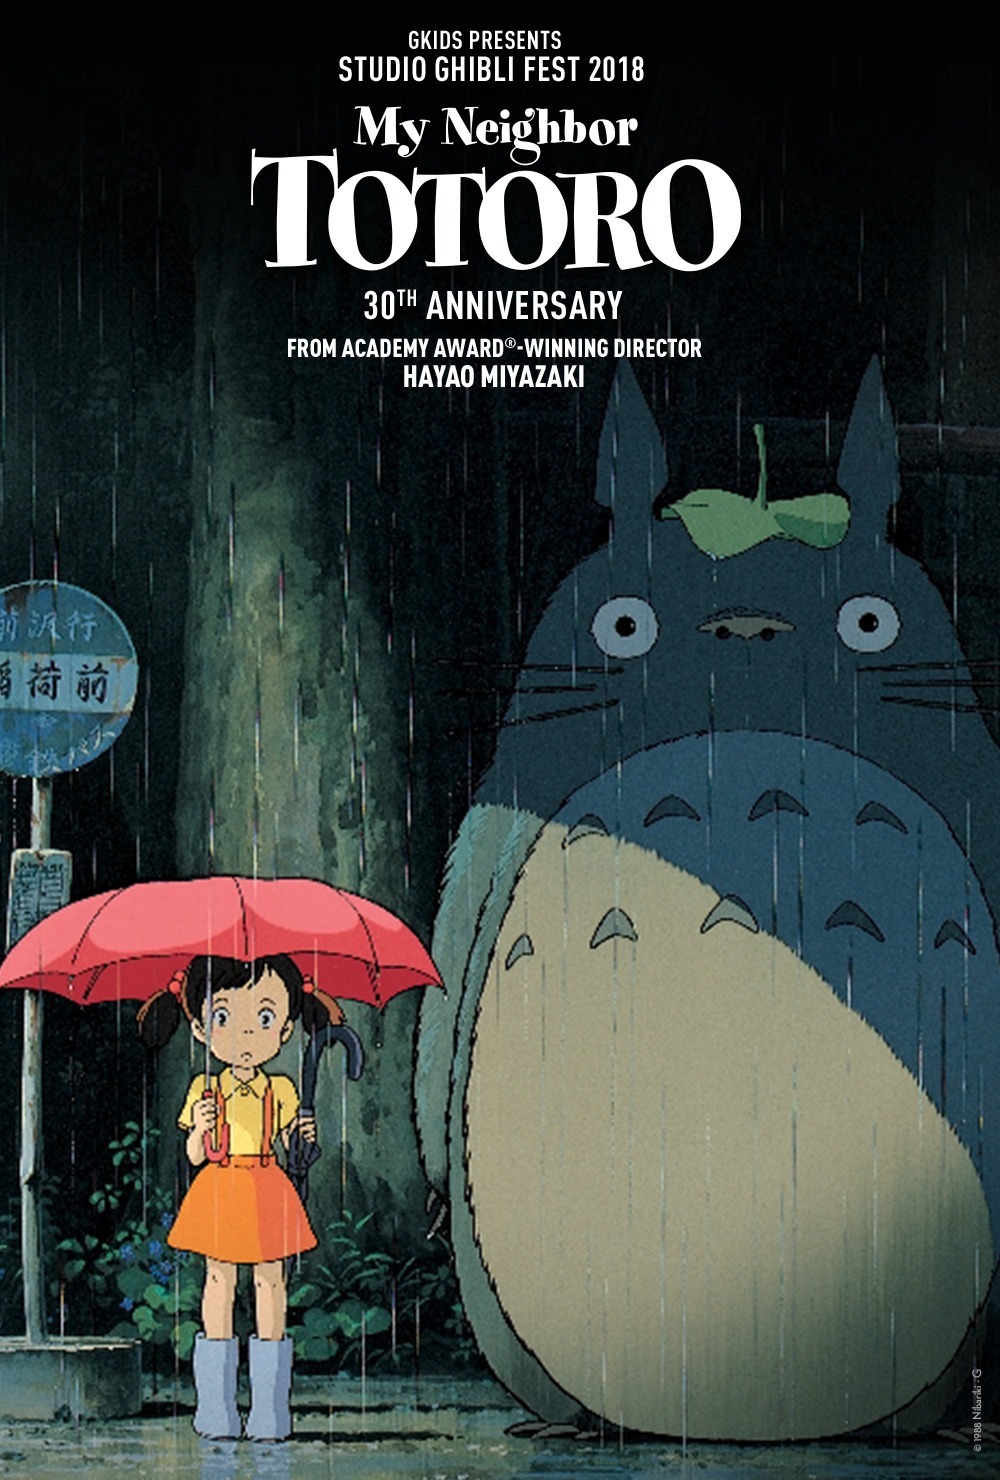 My Neighbor Totoro 30th Anniversary